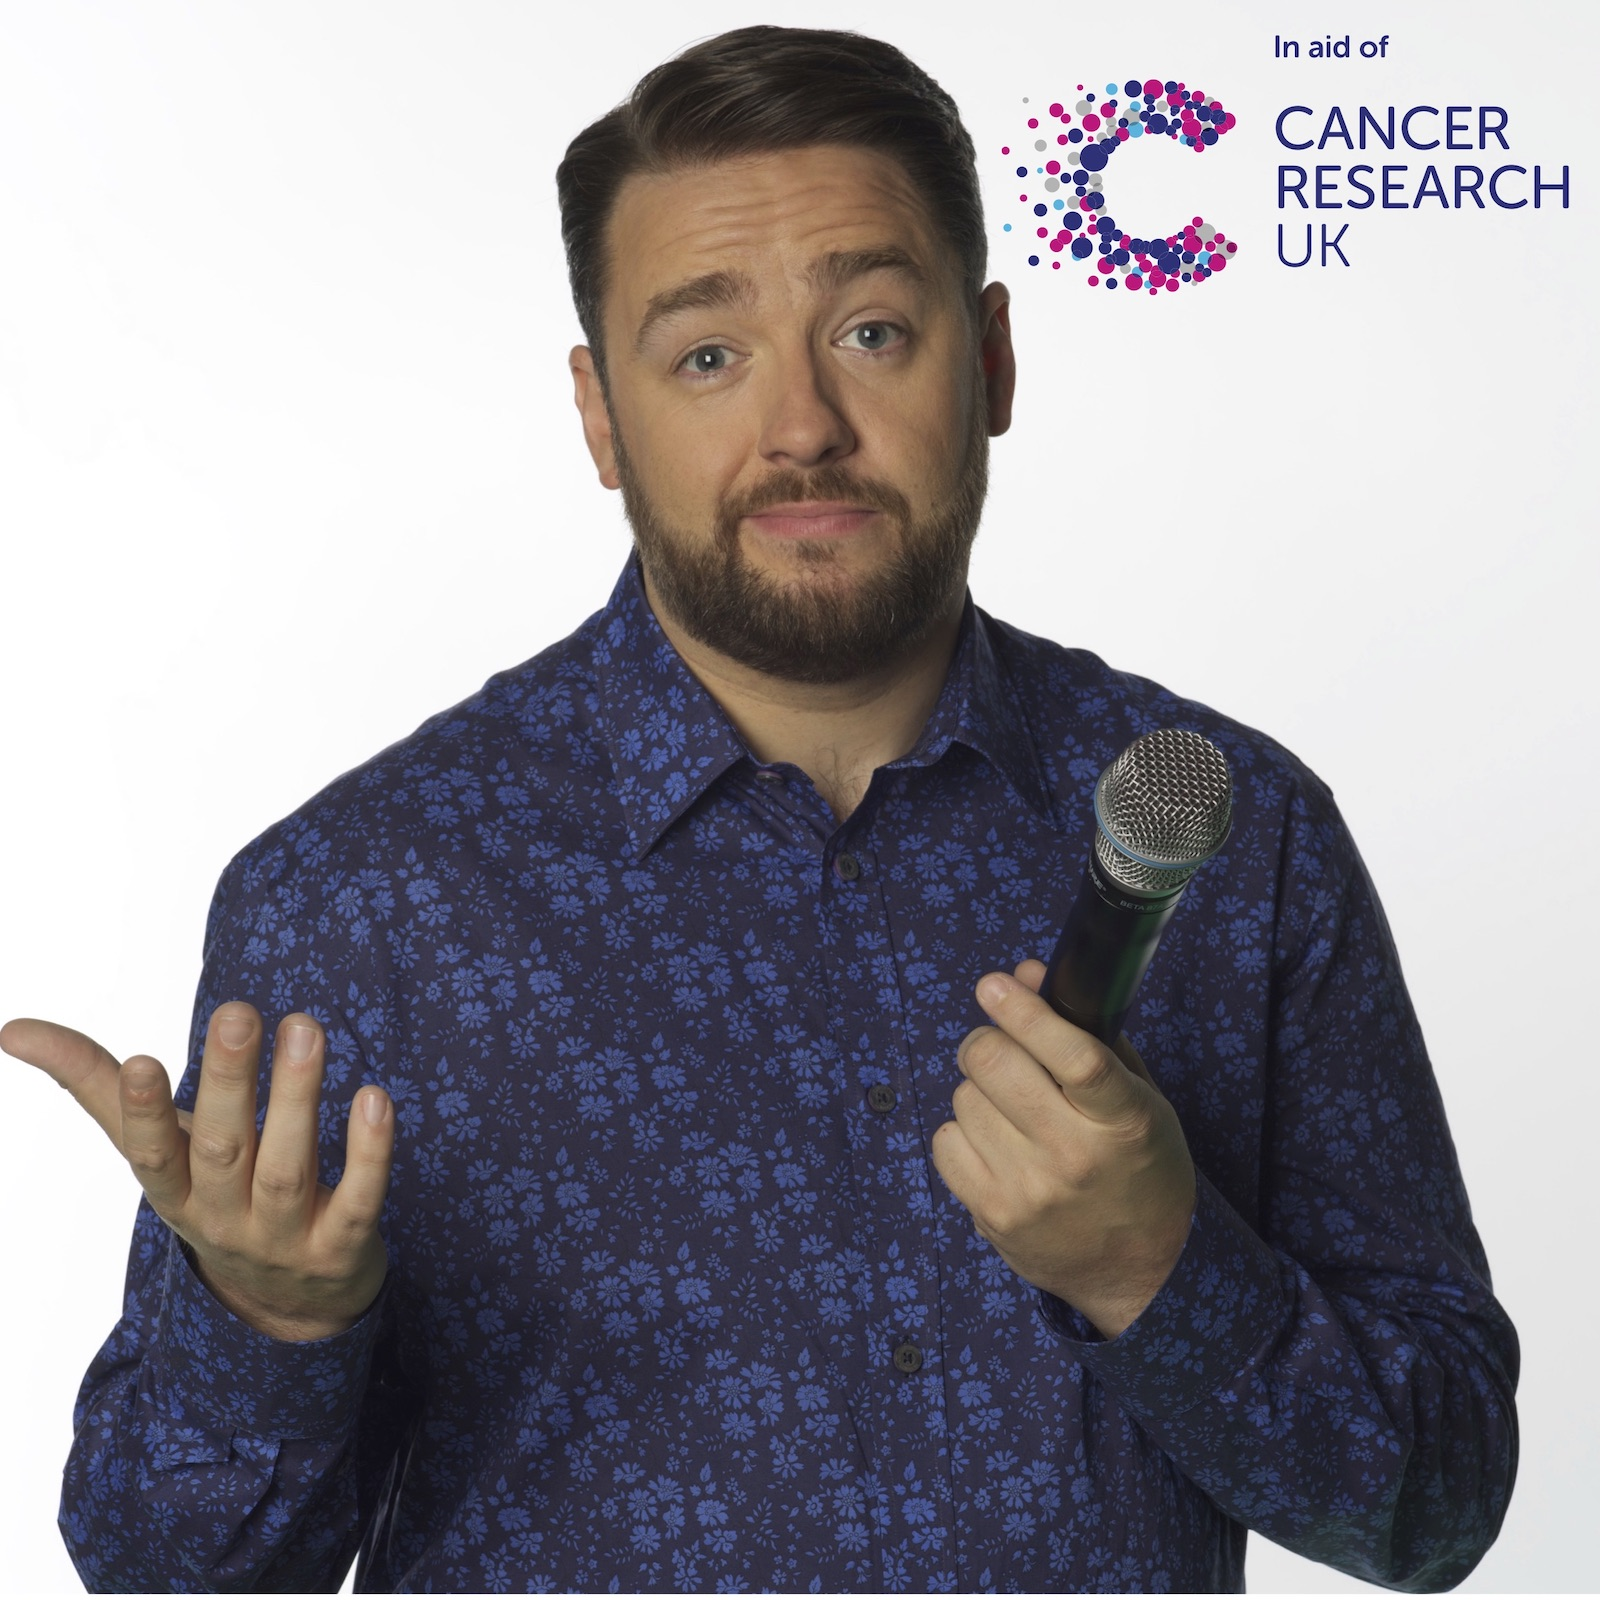 The Cancer Research UK Comedy Night with Jason Manford and support banner image